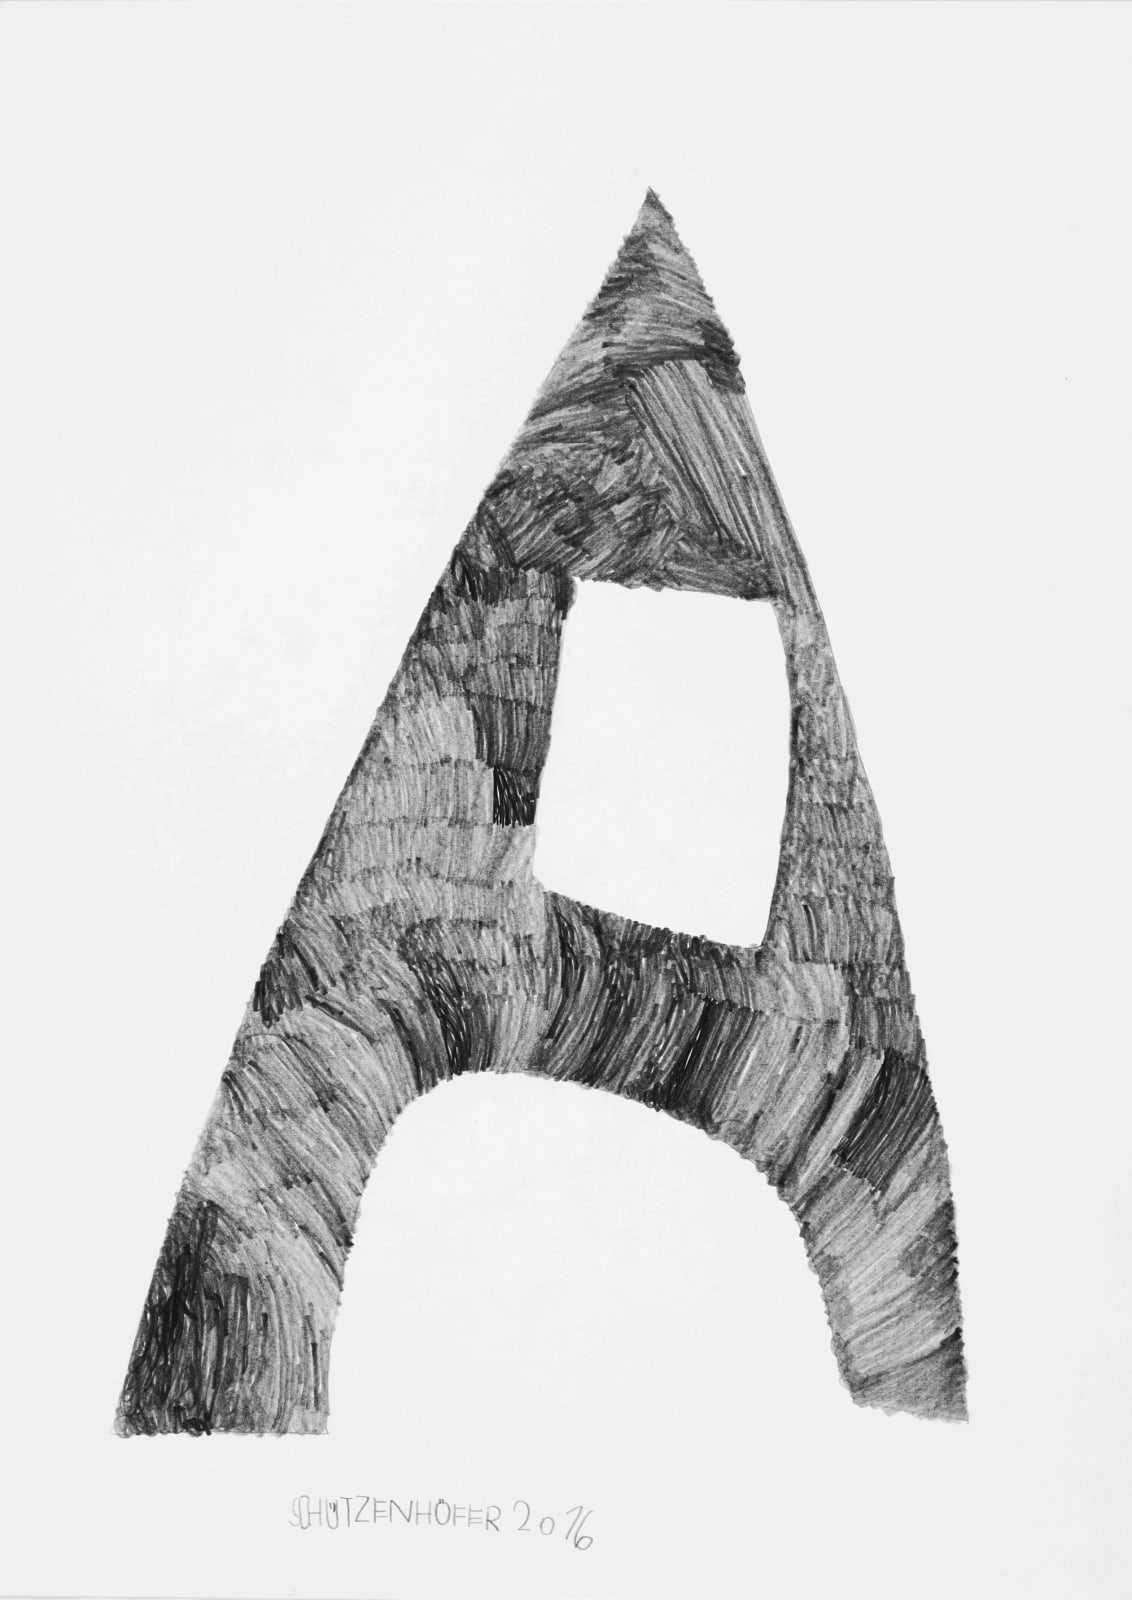 Eiffel Tower, 2016 Graphite on paper 27.6 x 19.7 in. (70 x 50 cm.) (GSG 106) SOLD